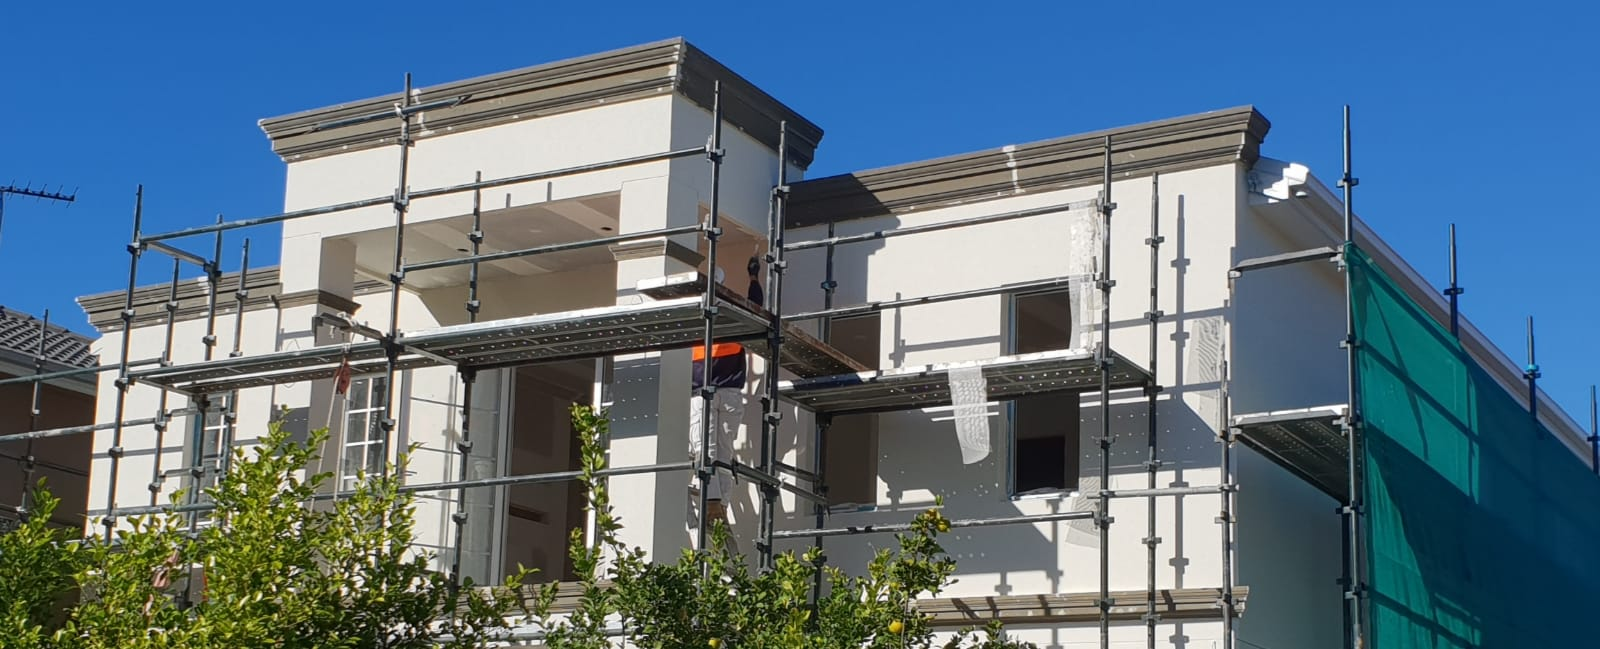 Scaffolding around a residential property in Sydney with rendering works done